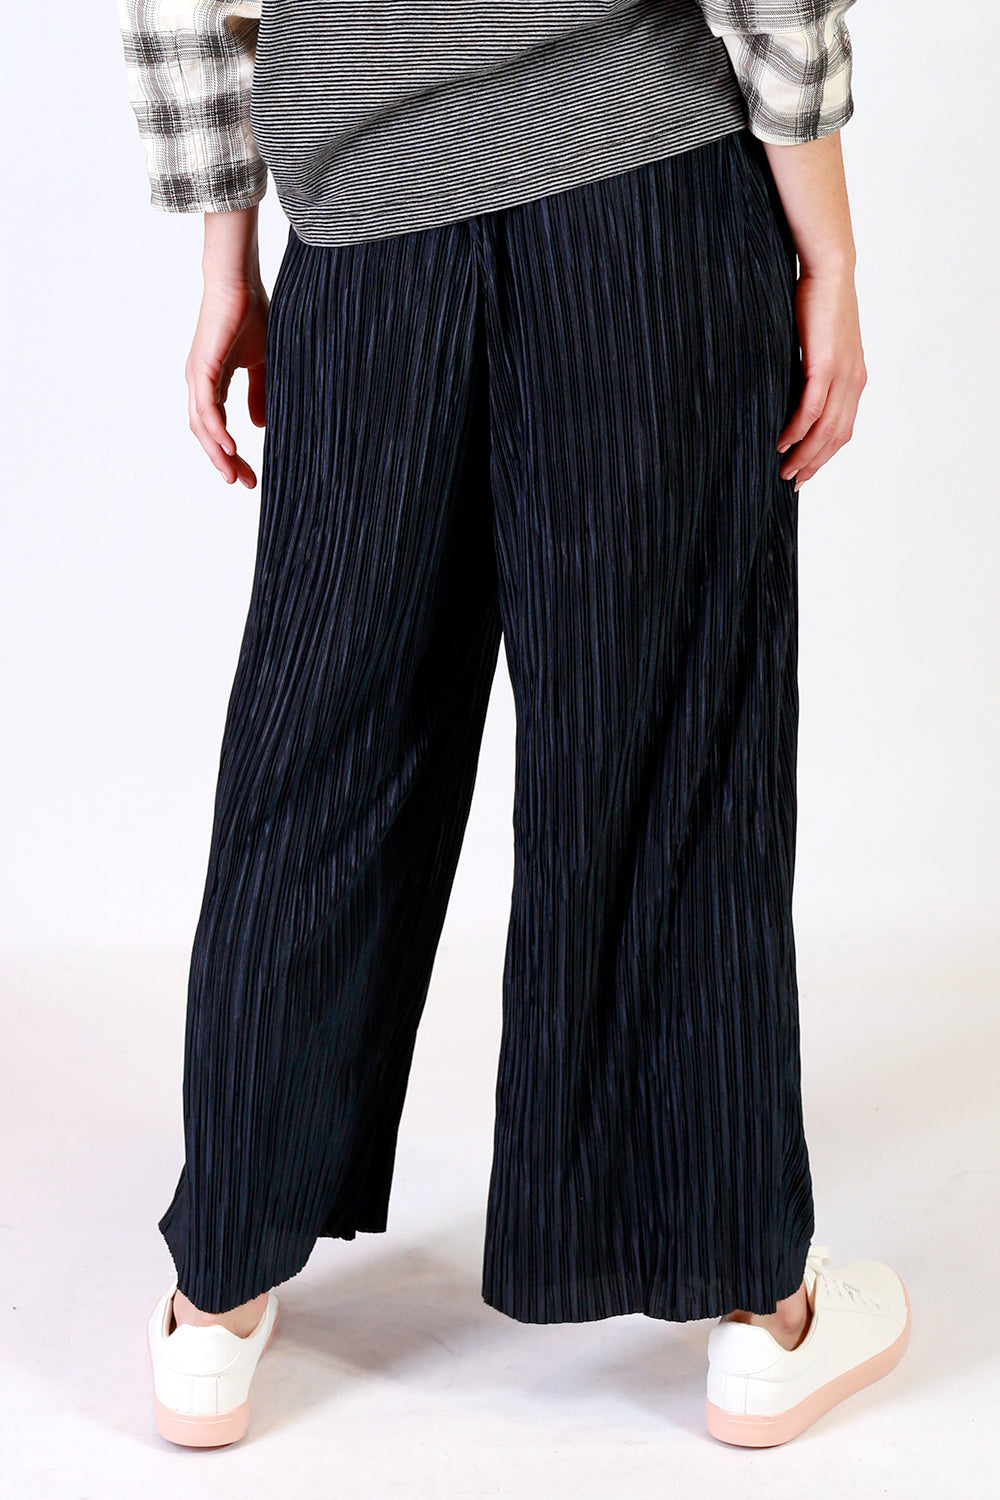 Alex Pleat Pant, Annah Stretton AW19, Pleated Pant, Shot on Model